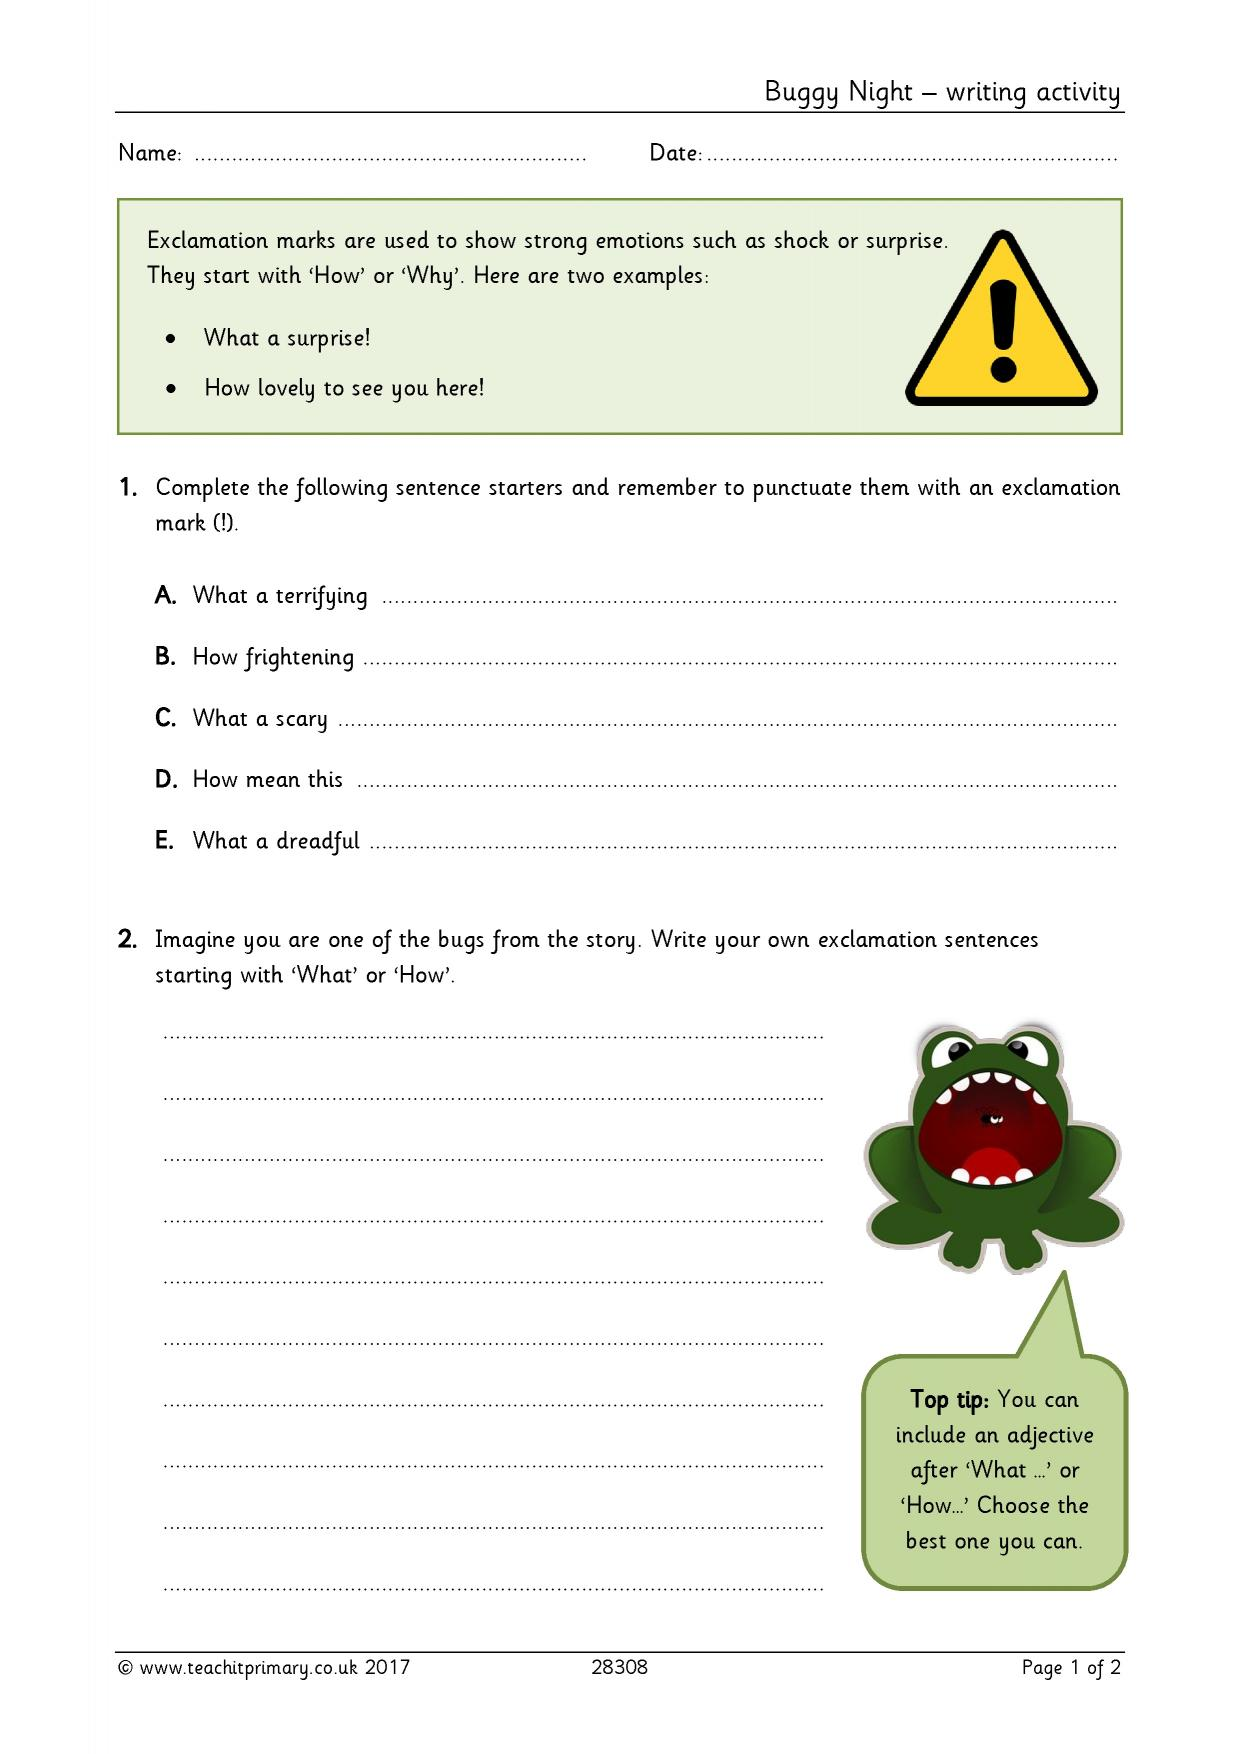 teachit primary writing composition resources for eyfs and ks buggy night writing activity